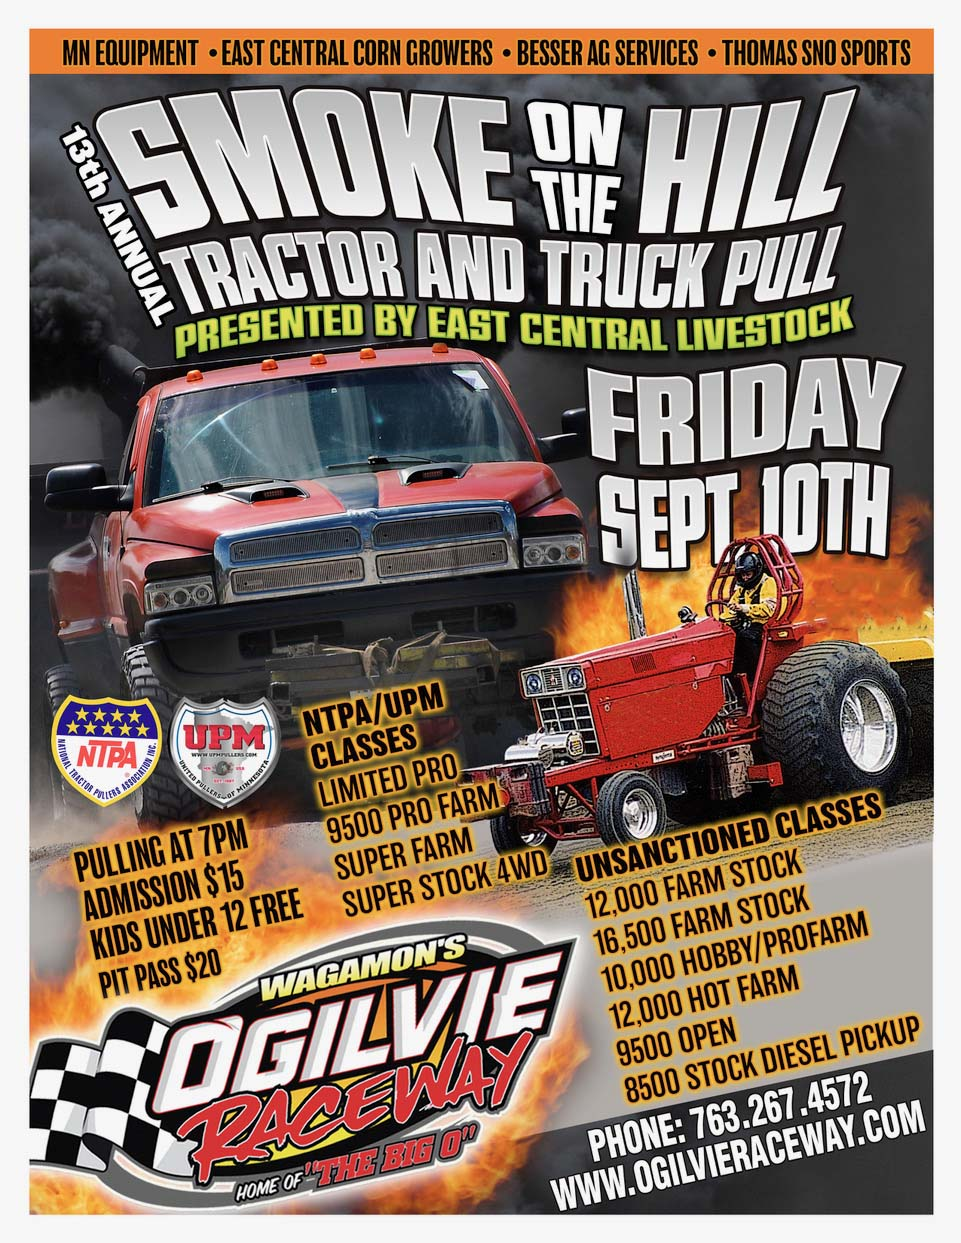 Truck and Tractor Pull RESCHEDULED to Sept. 10th